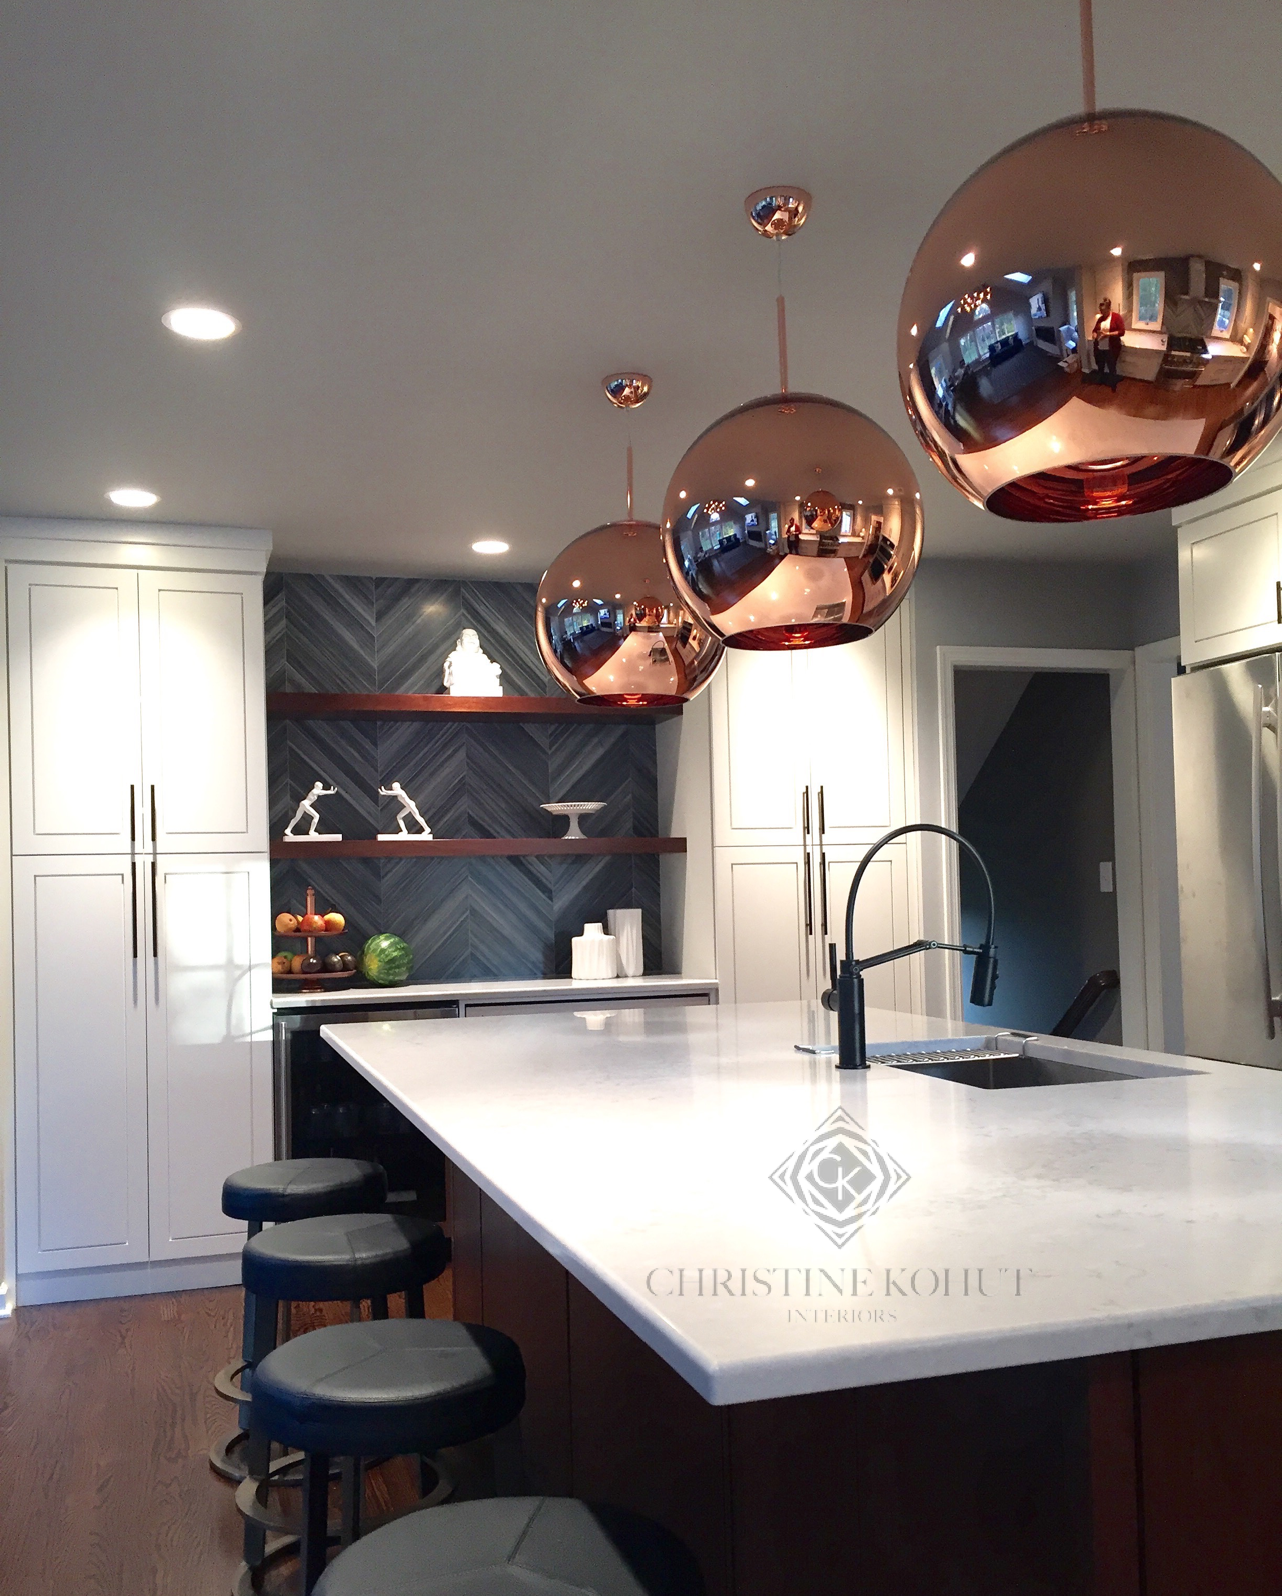 Marble Kitchen Accessories Coiled Faucet Christine Kohut Interiors Rose Gold Quartz Counters